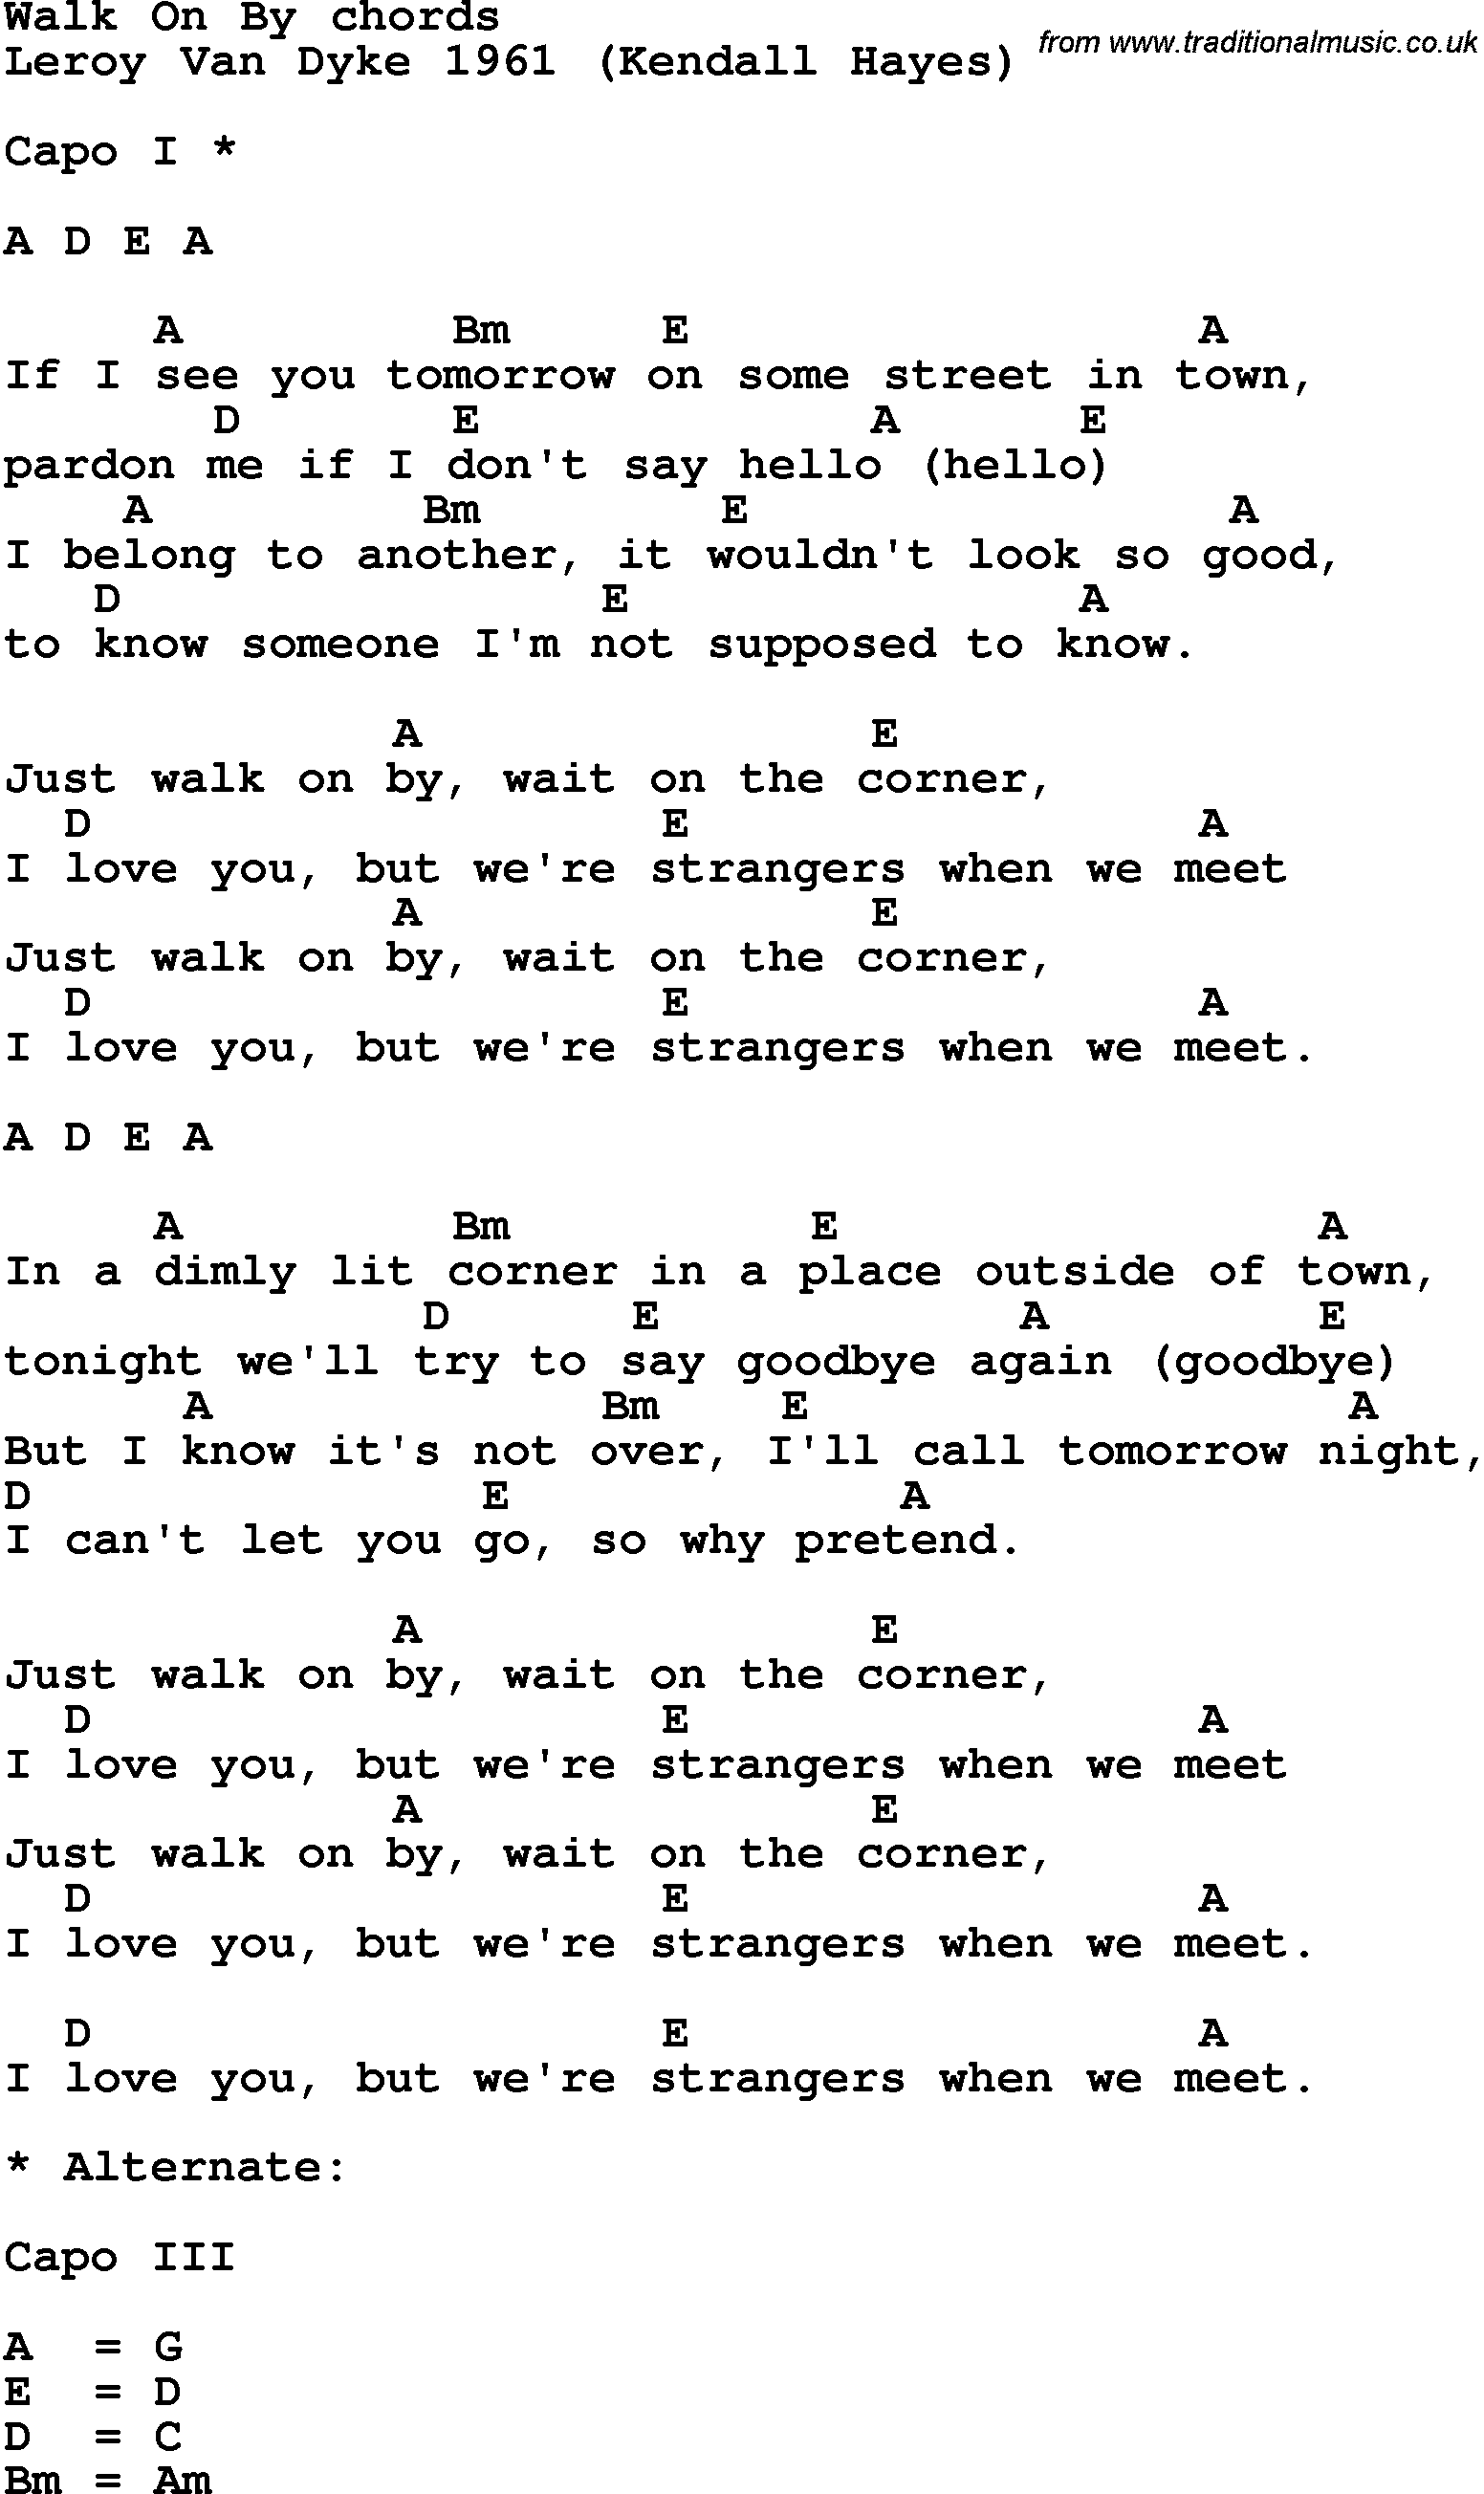 Song Lyrics With Guitar Chords For Walk On By